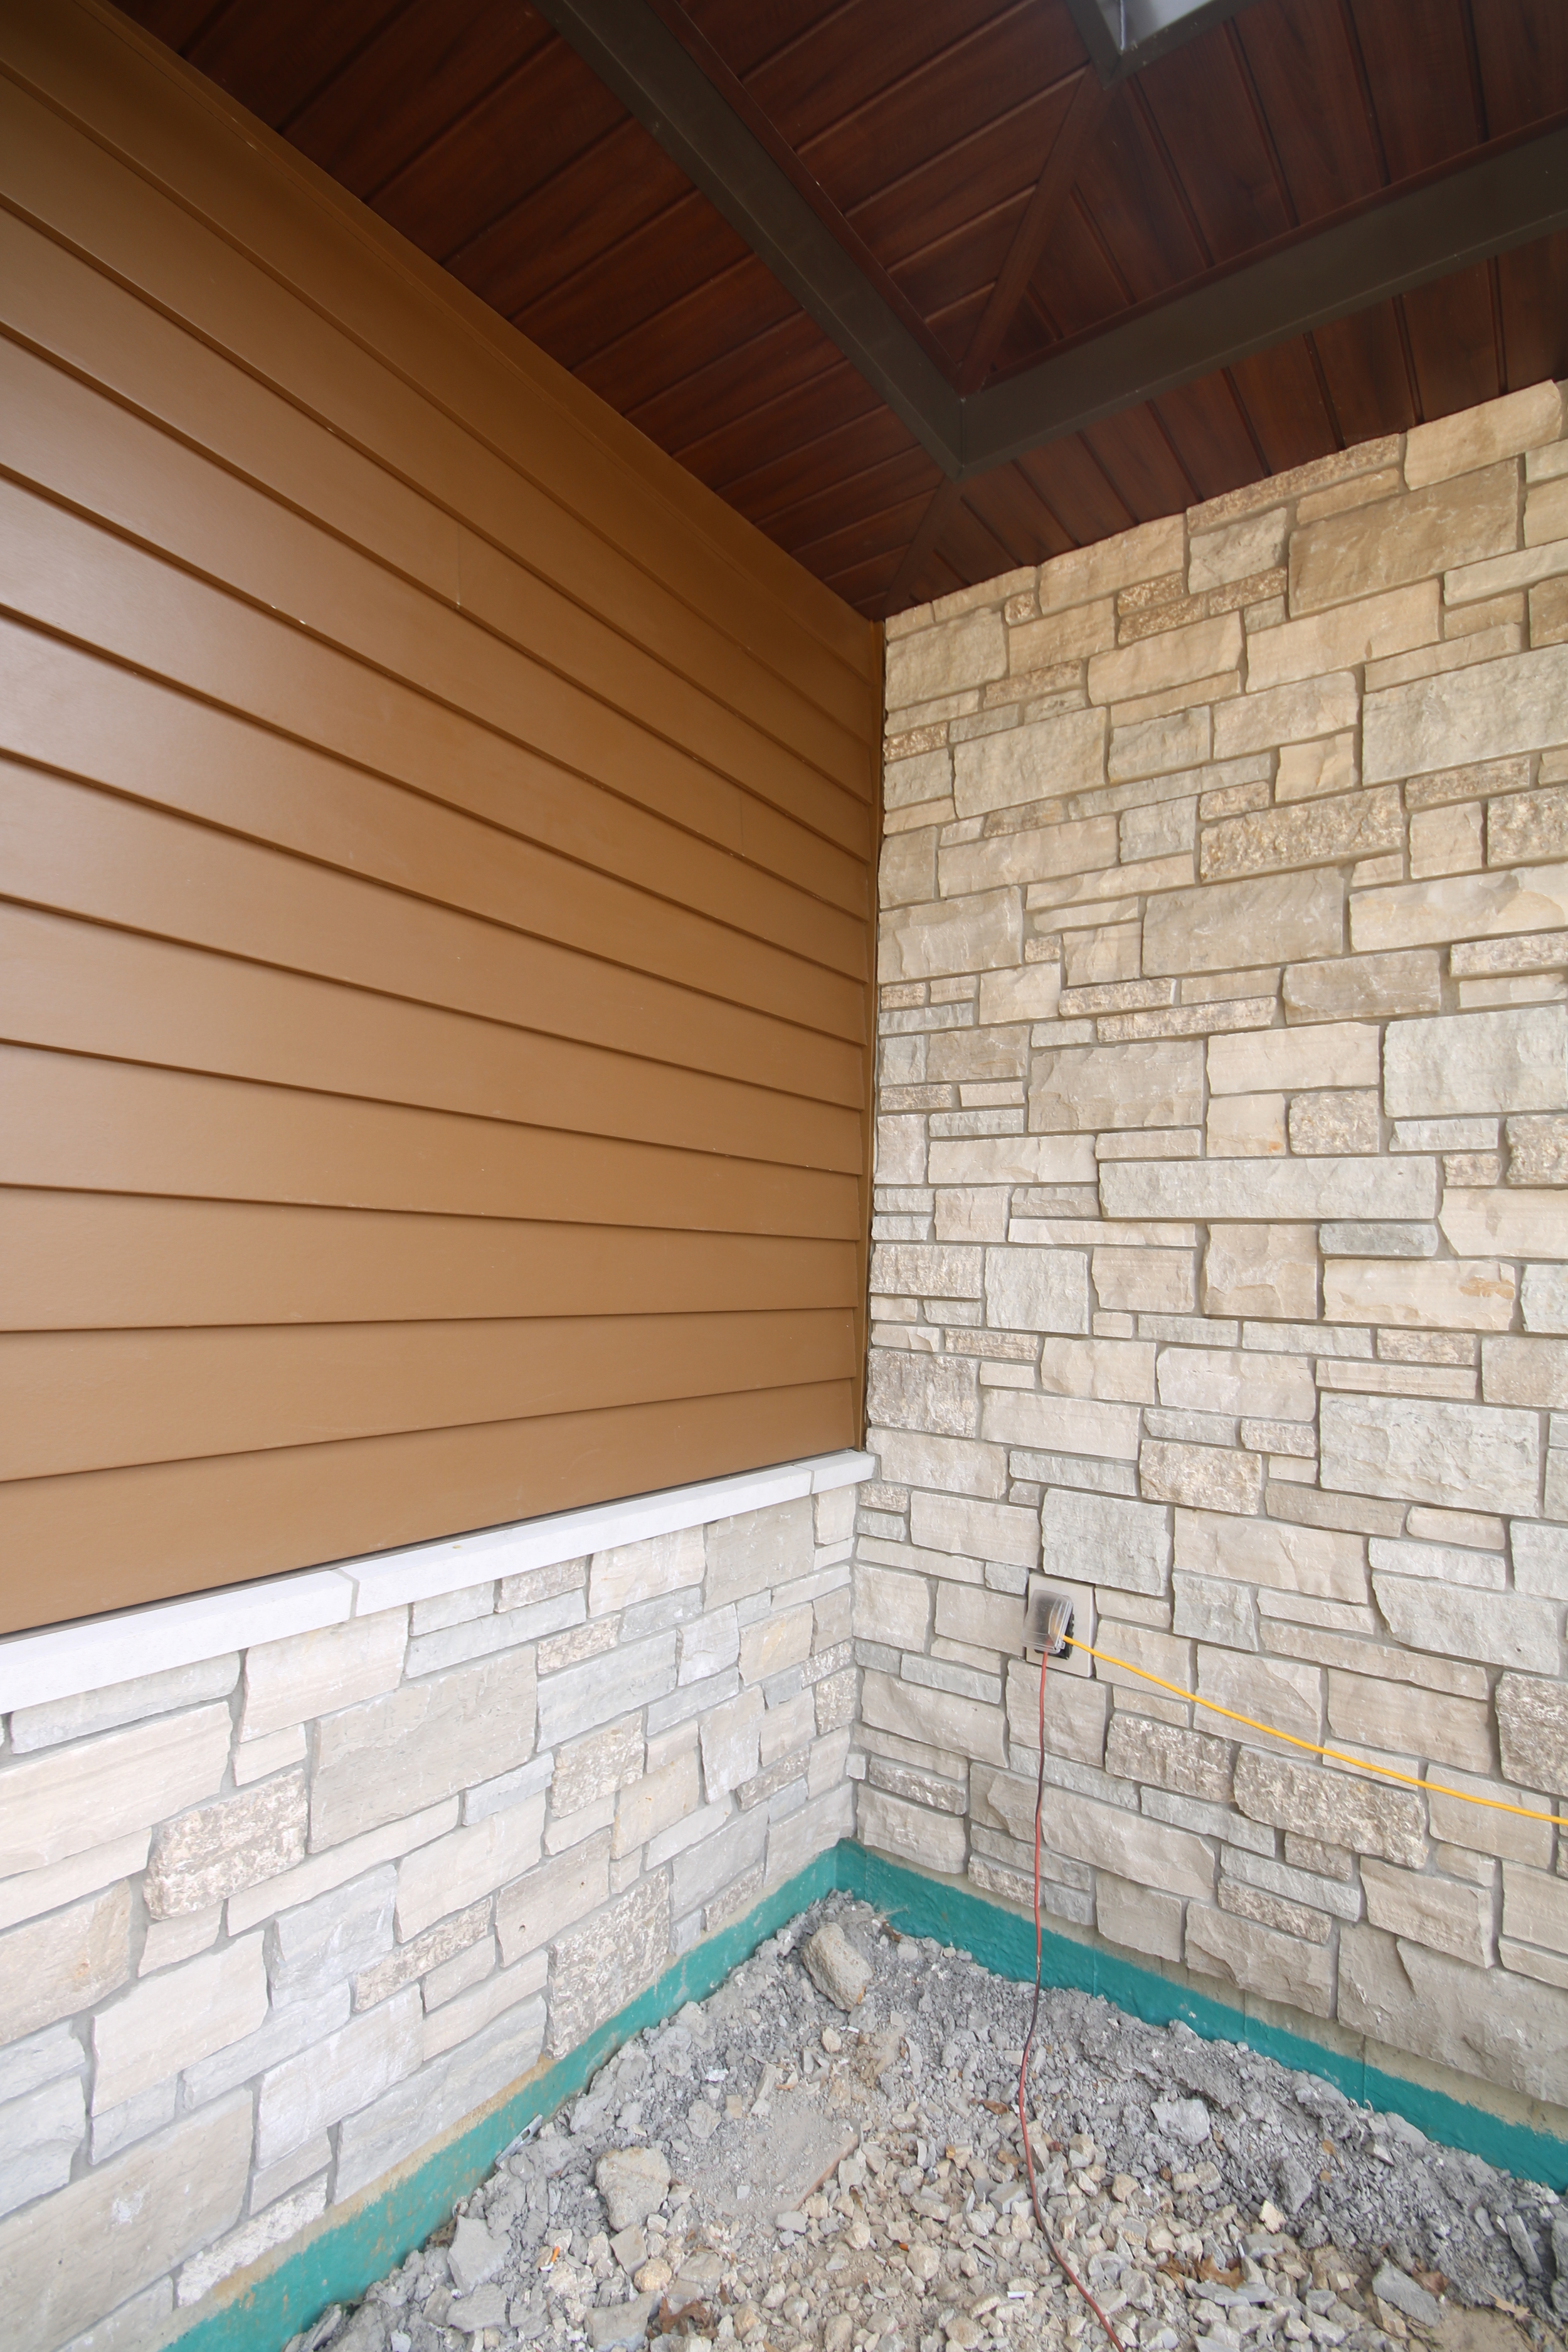 Fiber-Cement Siding, Indiana Limestone, and Sagiper (new to the U.S.) meet under the Standing Seam Metal Roof.